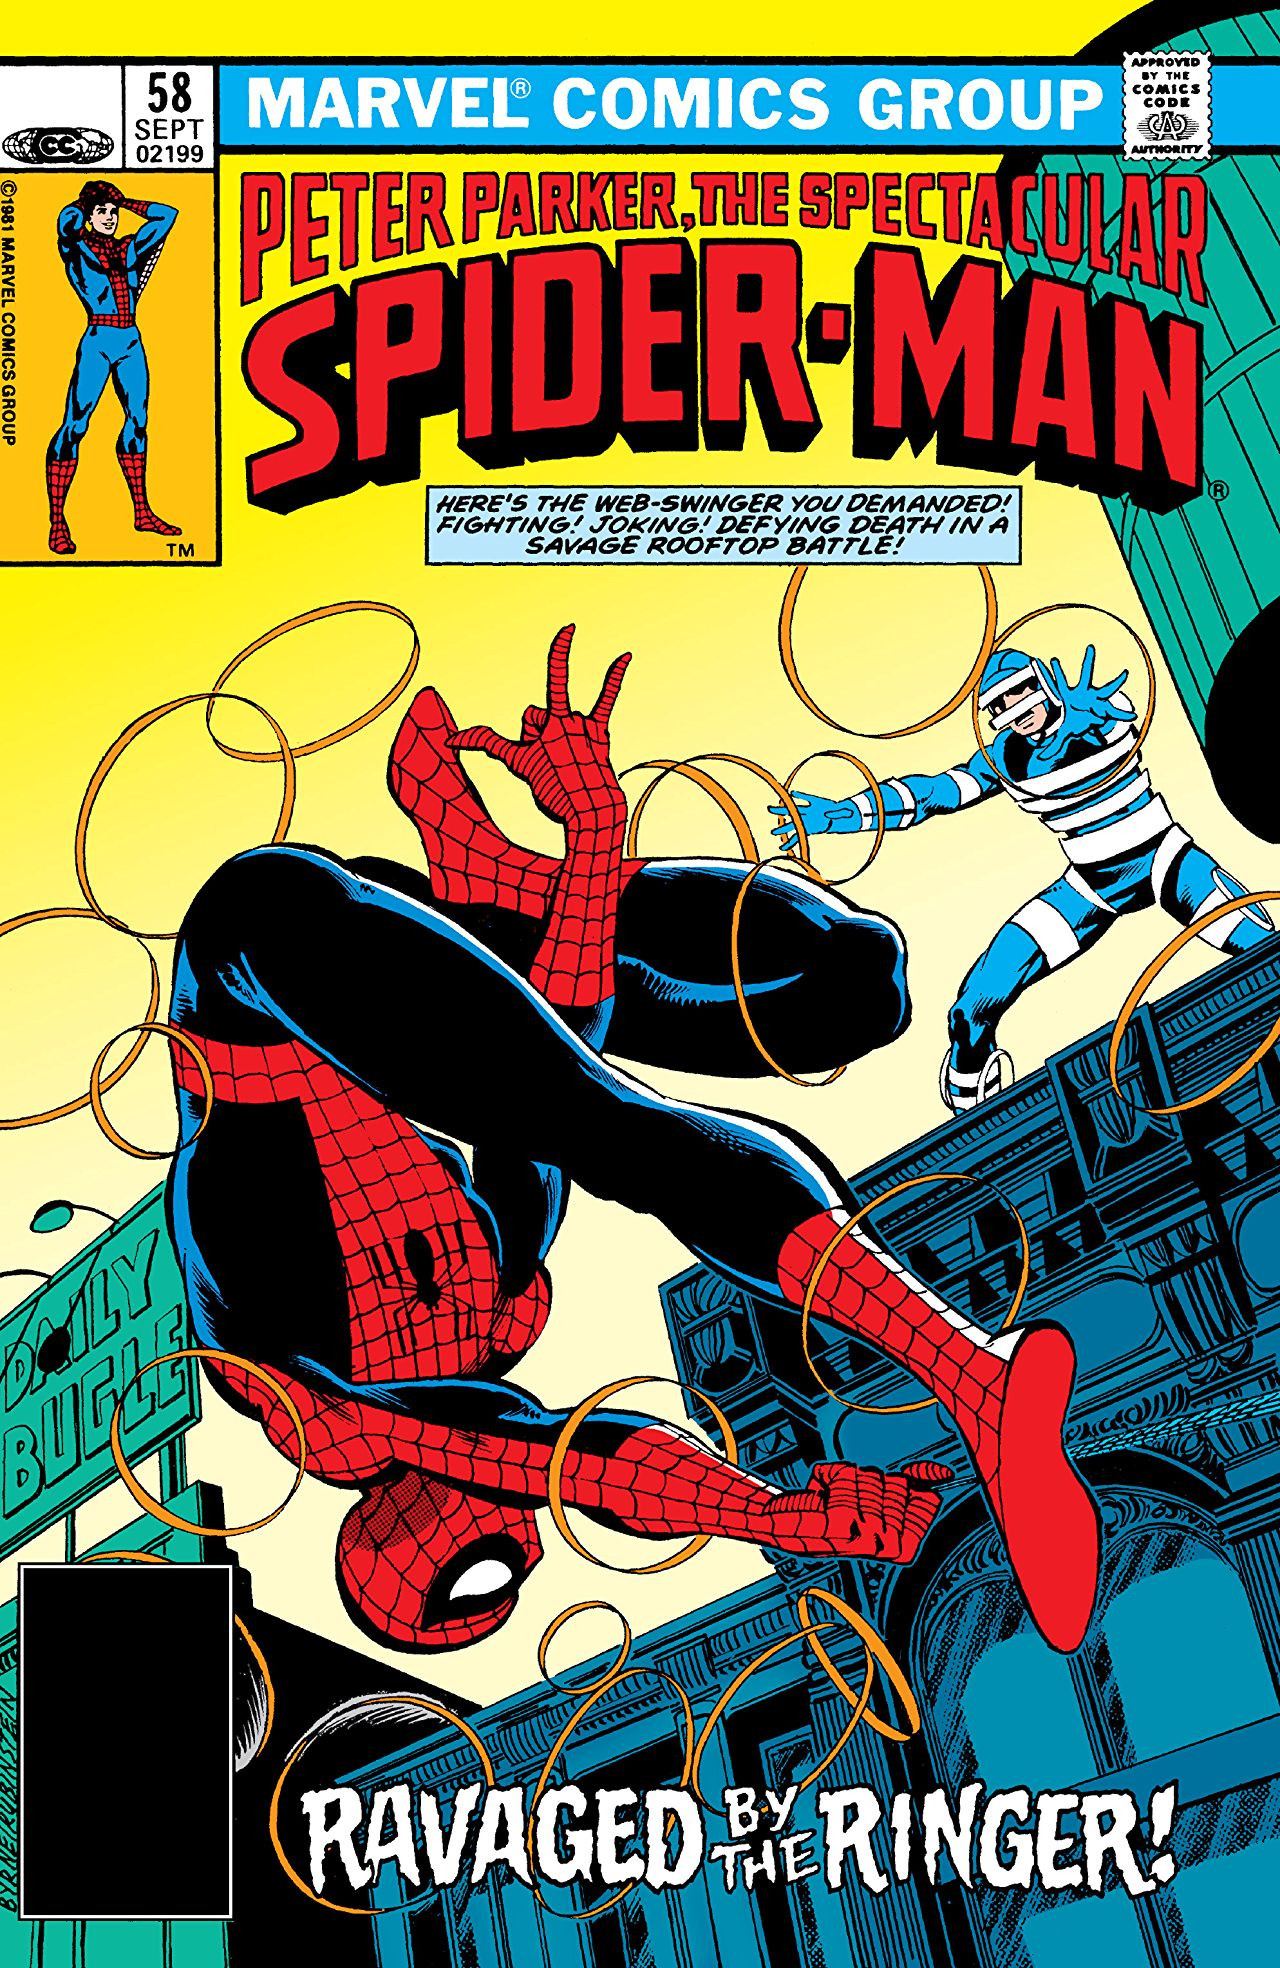 Peter Parker, The Spectacular Spider-Man Vol 1 58